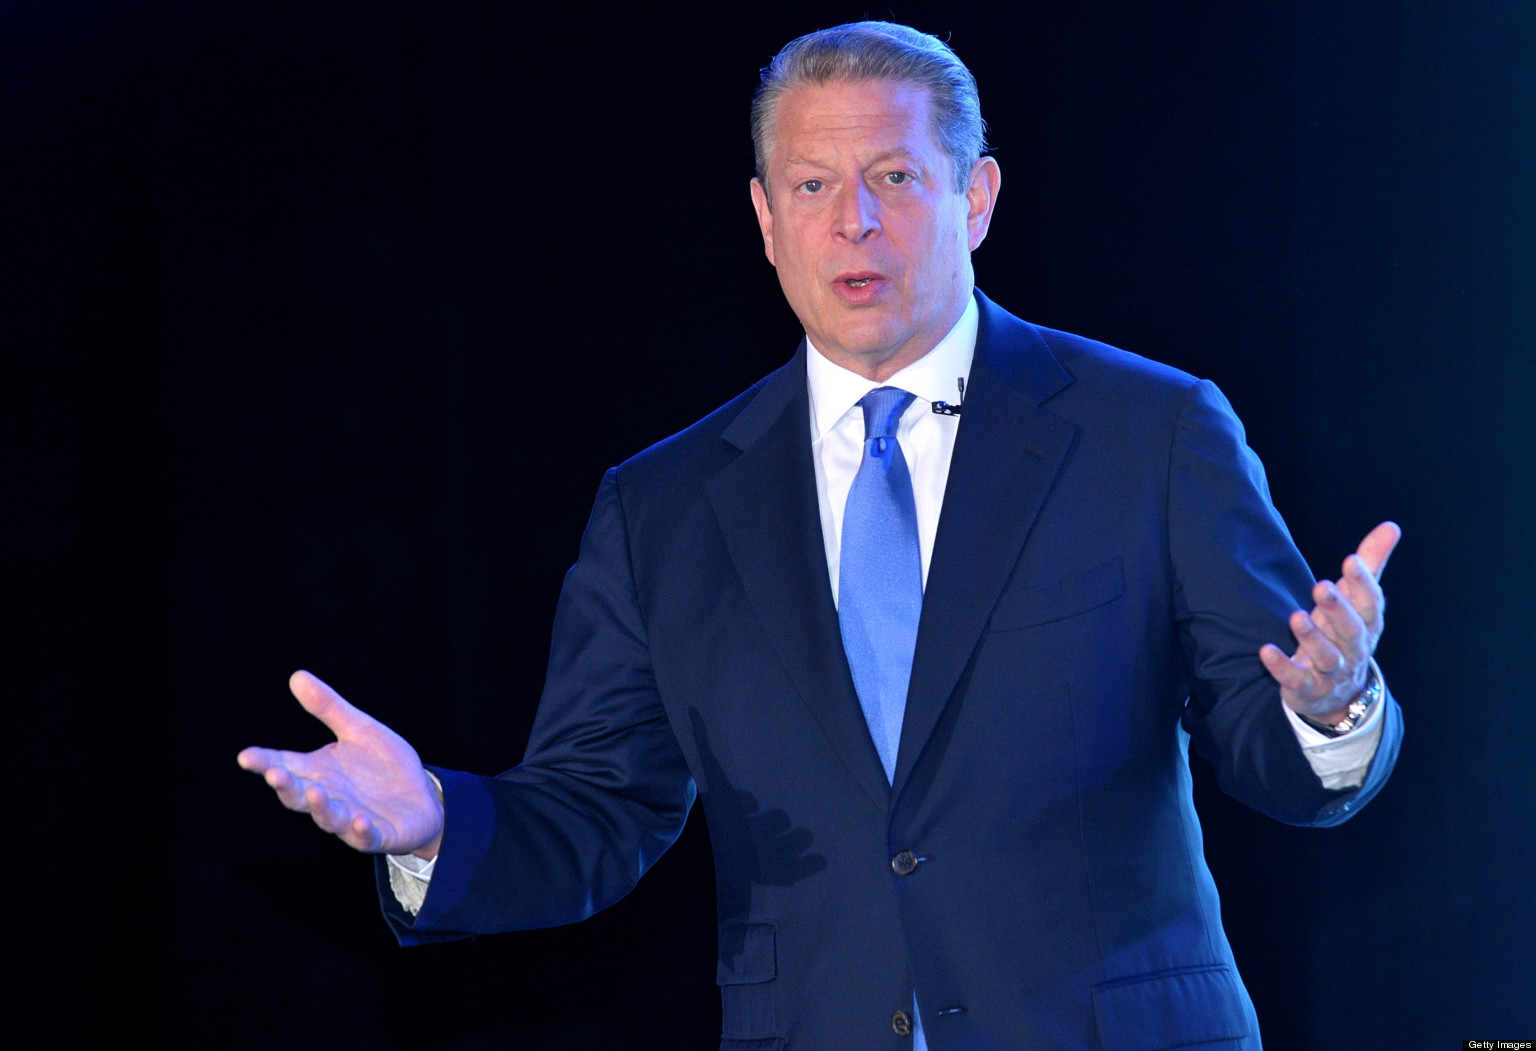 an inconvenient truth by al gore essay The intelligent, charismatic al gore travels the world sharing his compelling and cautionary story of the threat the earth and all of its creatures face in global warming in 2006, this story was made into a motion picture, titled an inconvenient truth.